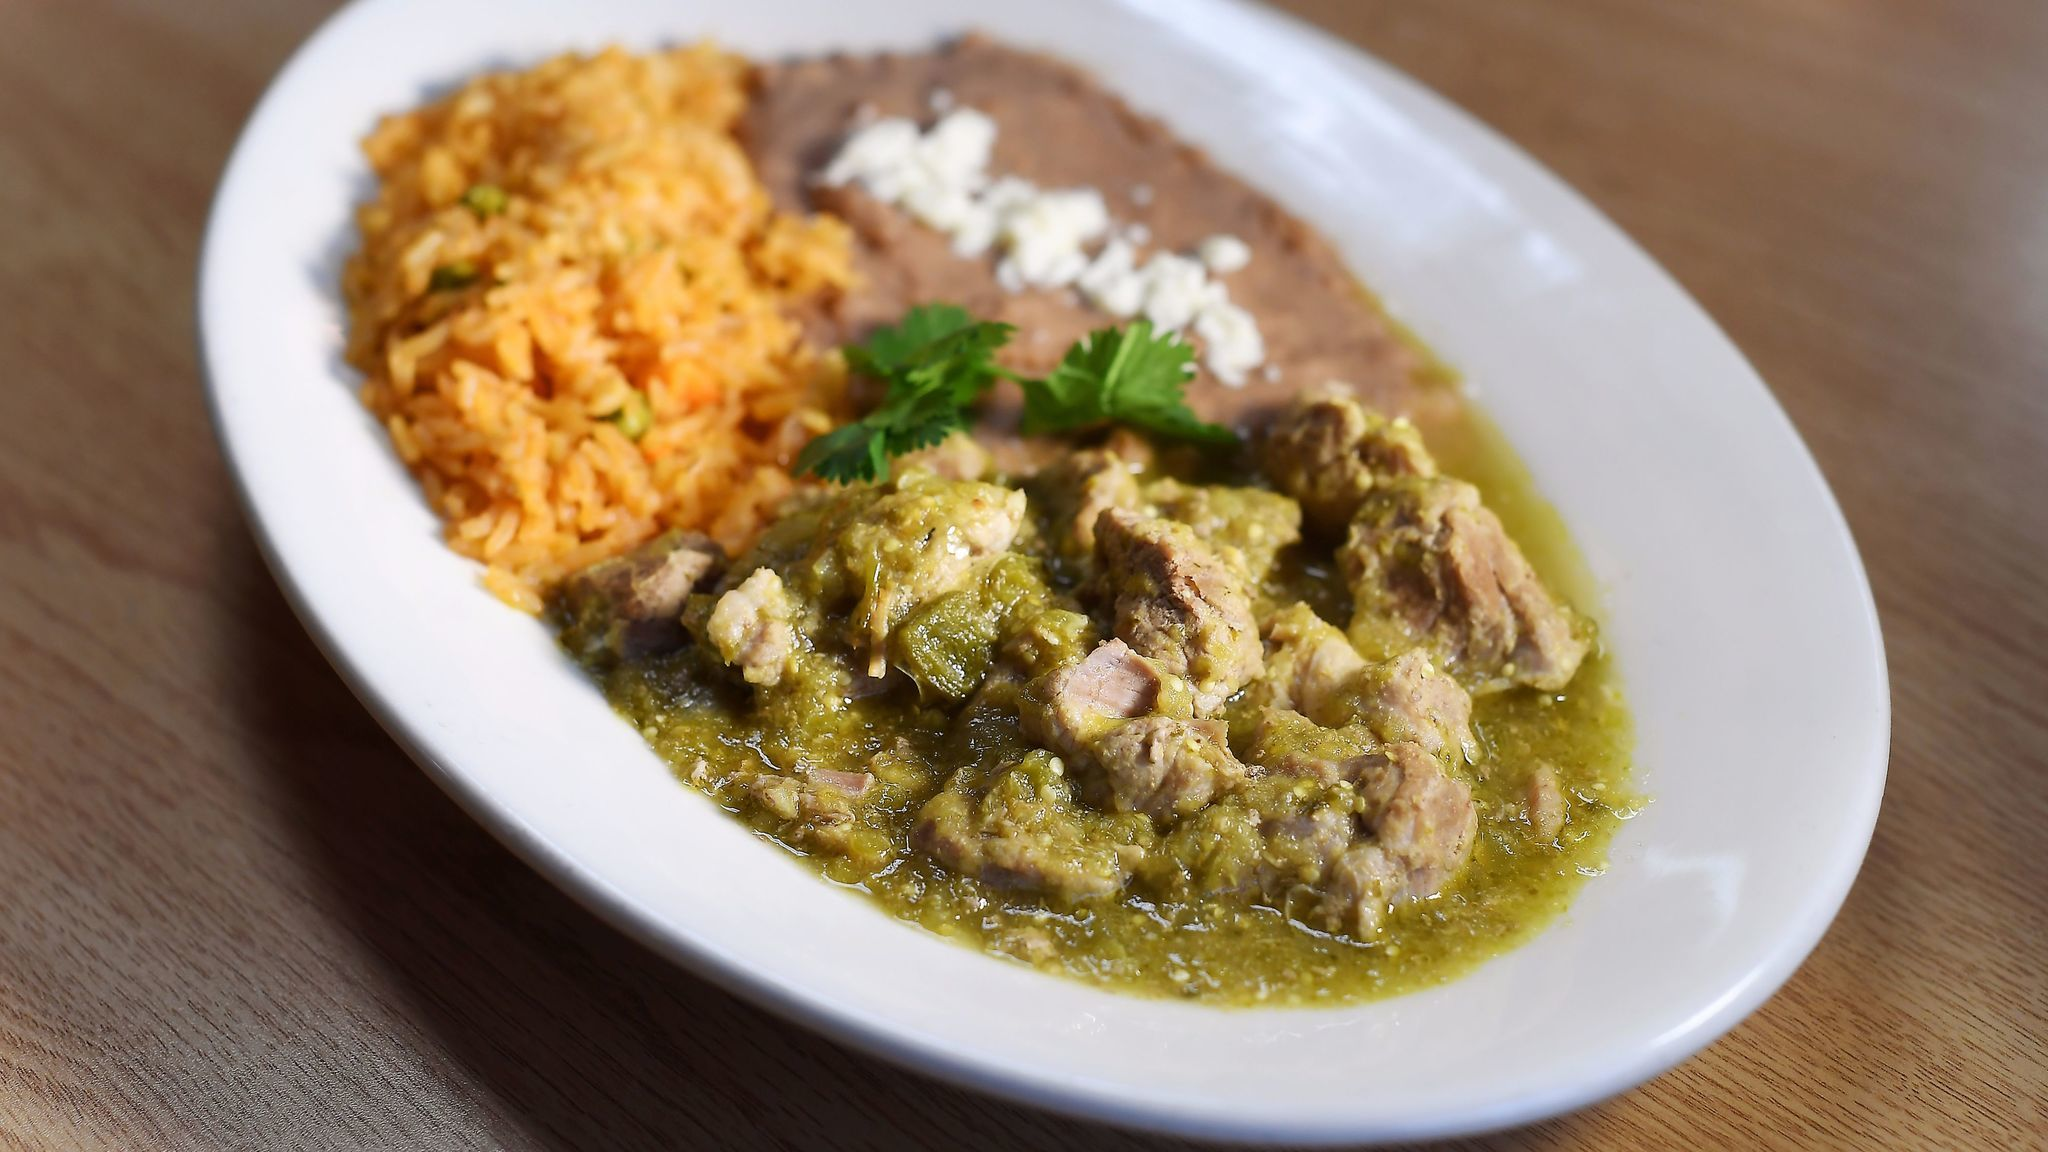 Chile verde is served with rice and beans, at Zapien's Salsa Grill and Taqueria in Pico Rivera.